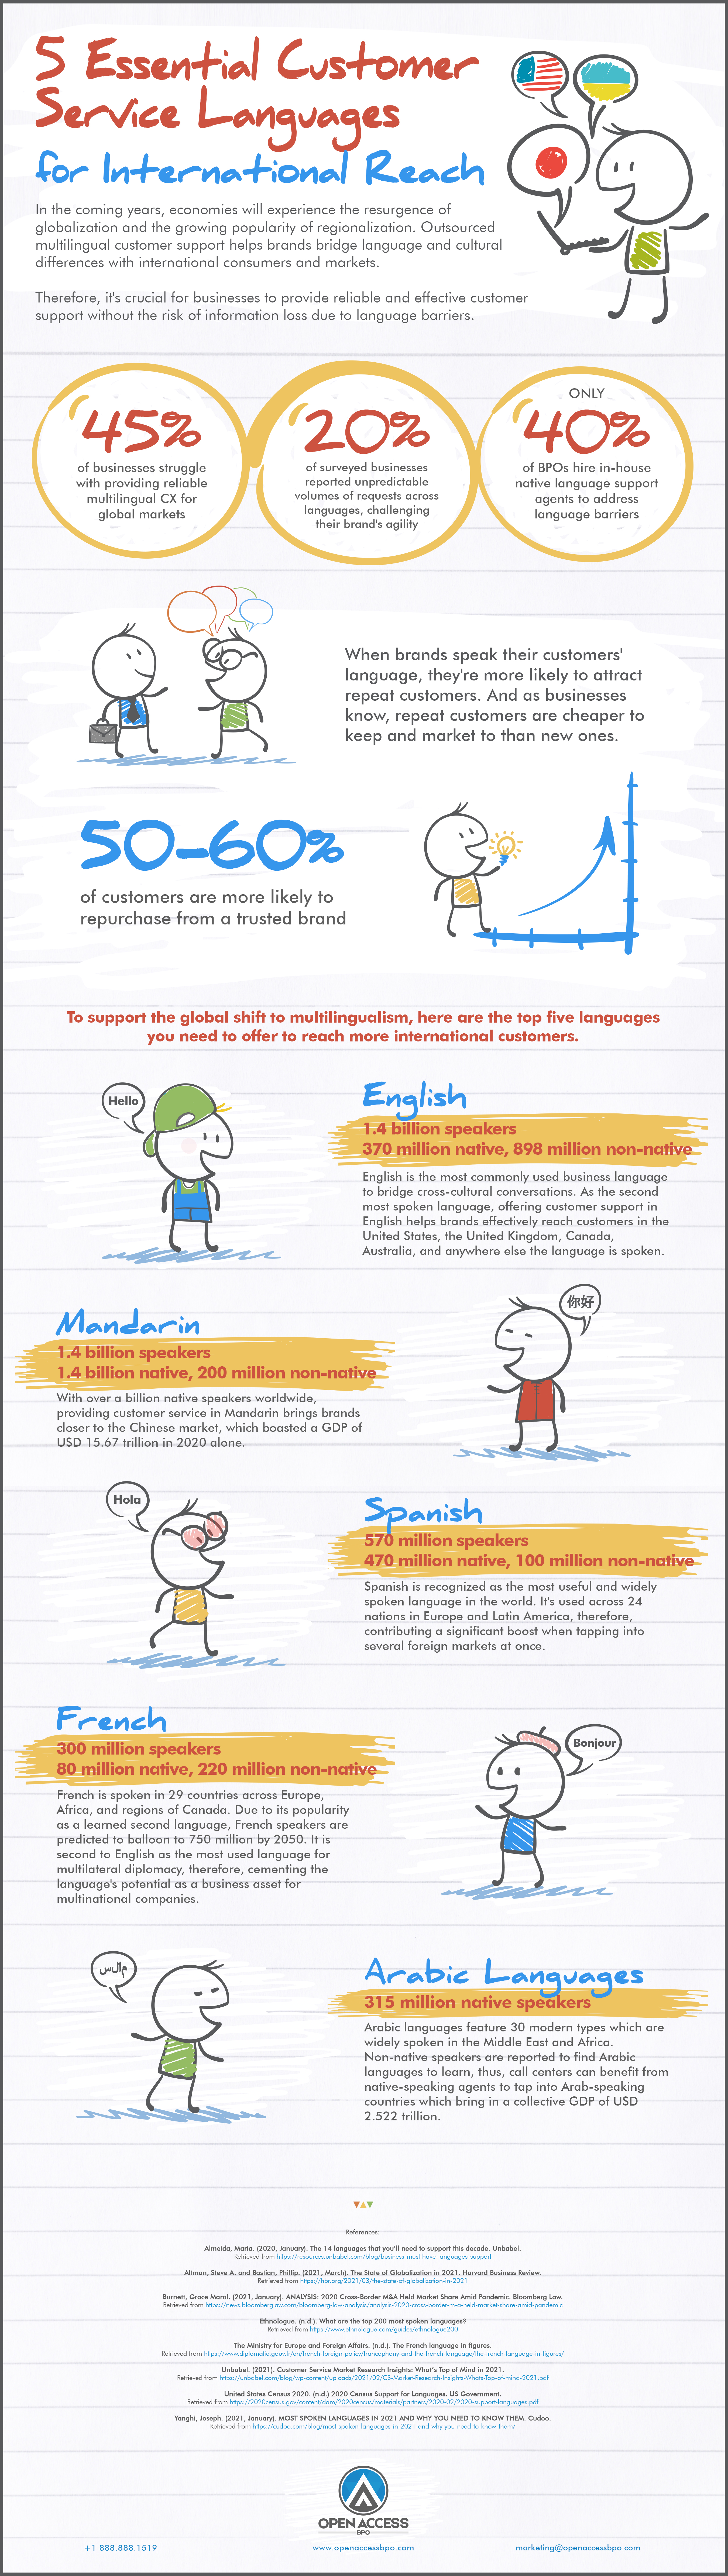 Infographic showing 5 Essential Customer Service Languages for International Reach